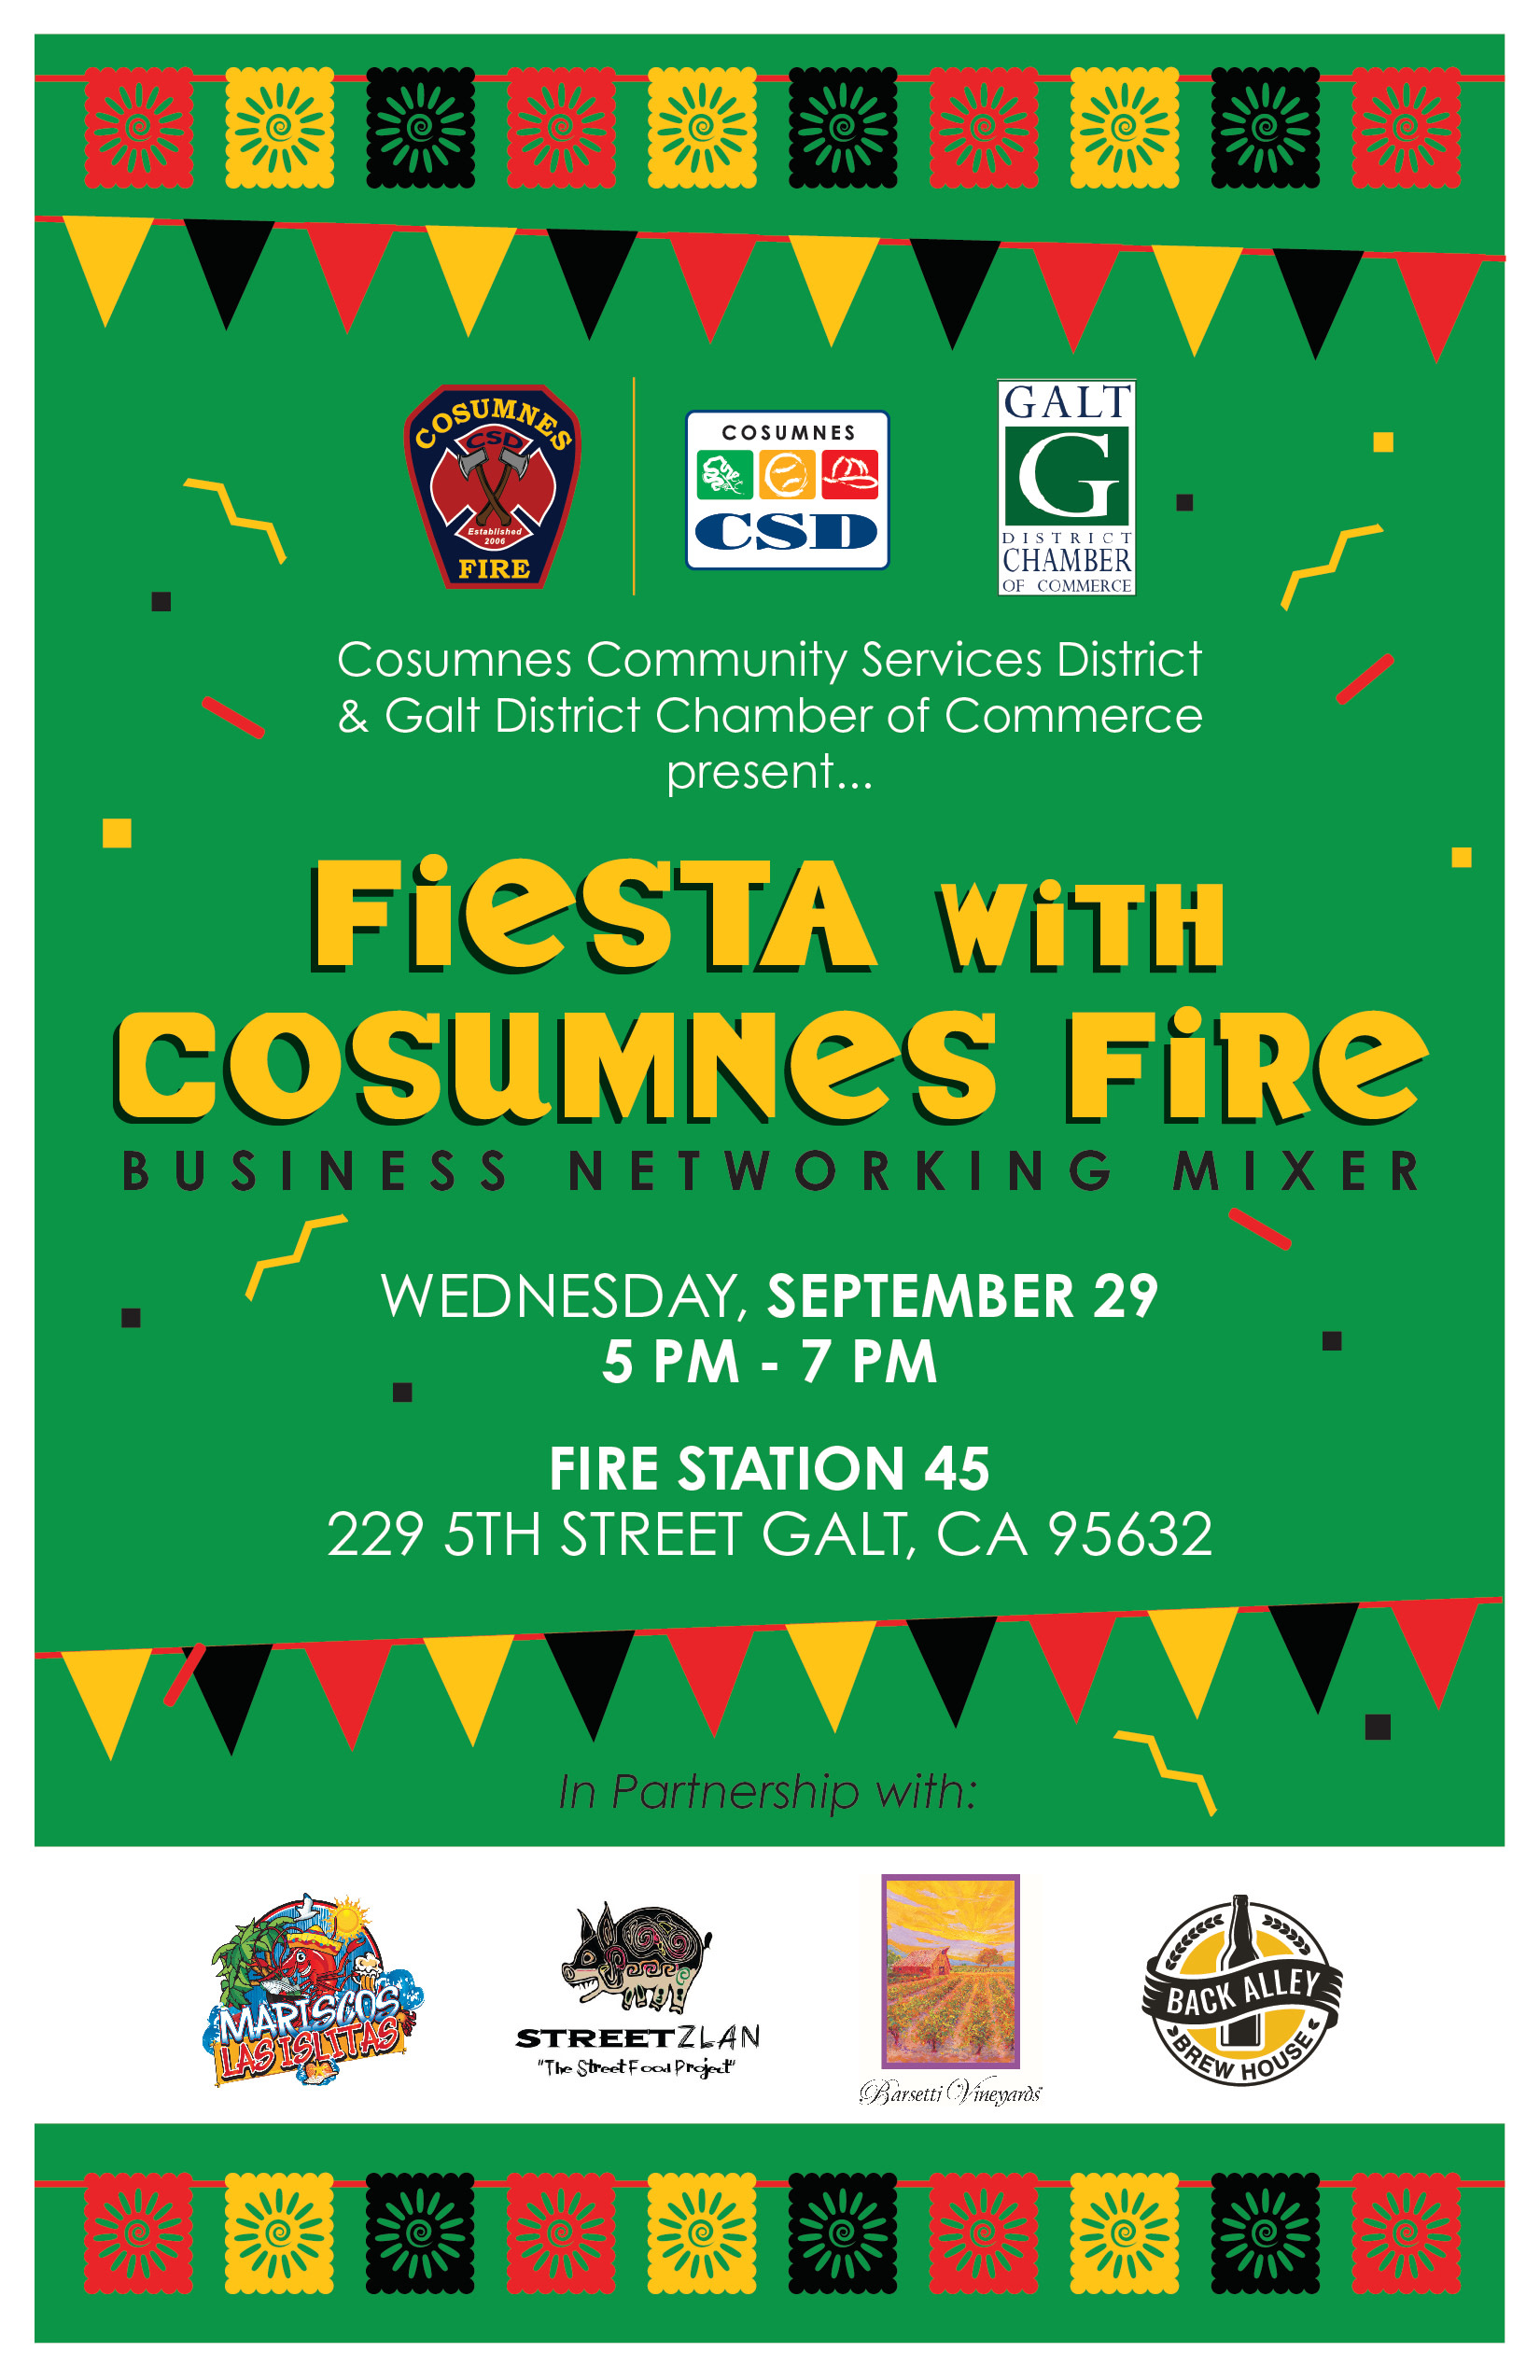 Fiesta with Cosumnes Fire Business Networking Mixer flyer, Wed., 09/29/21, 5-7pm, 229 5th St, Galt